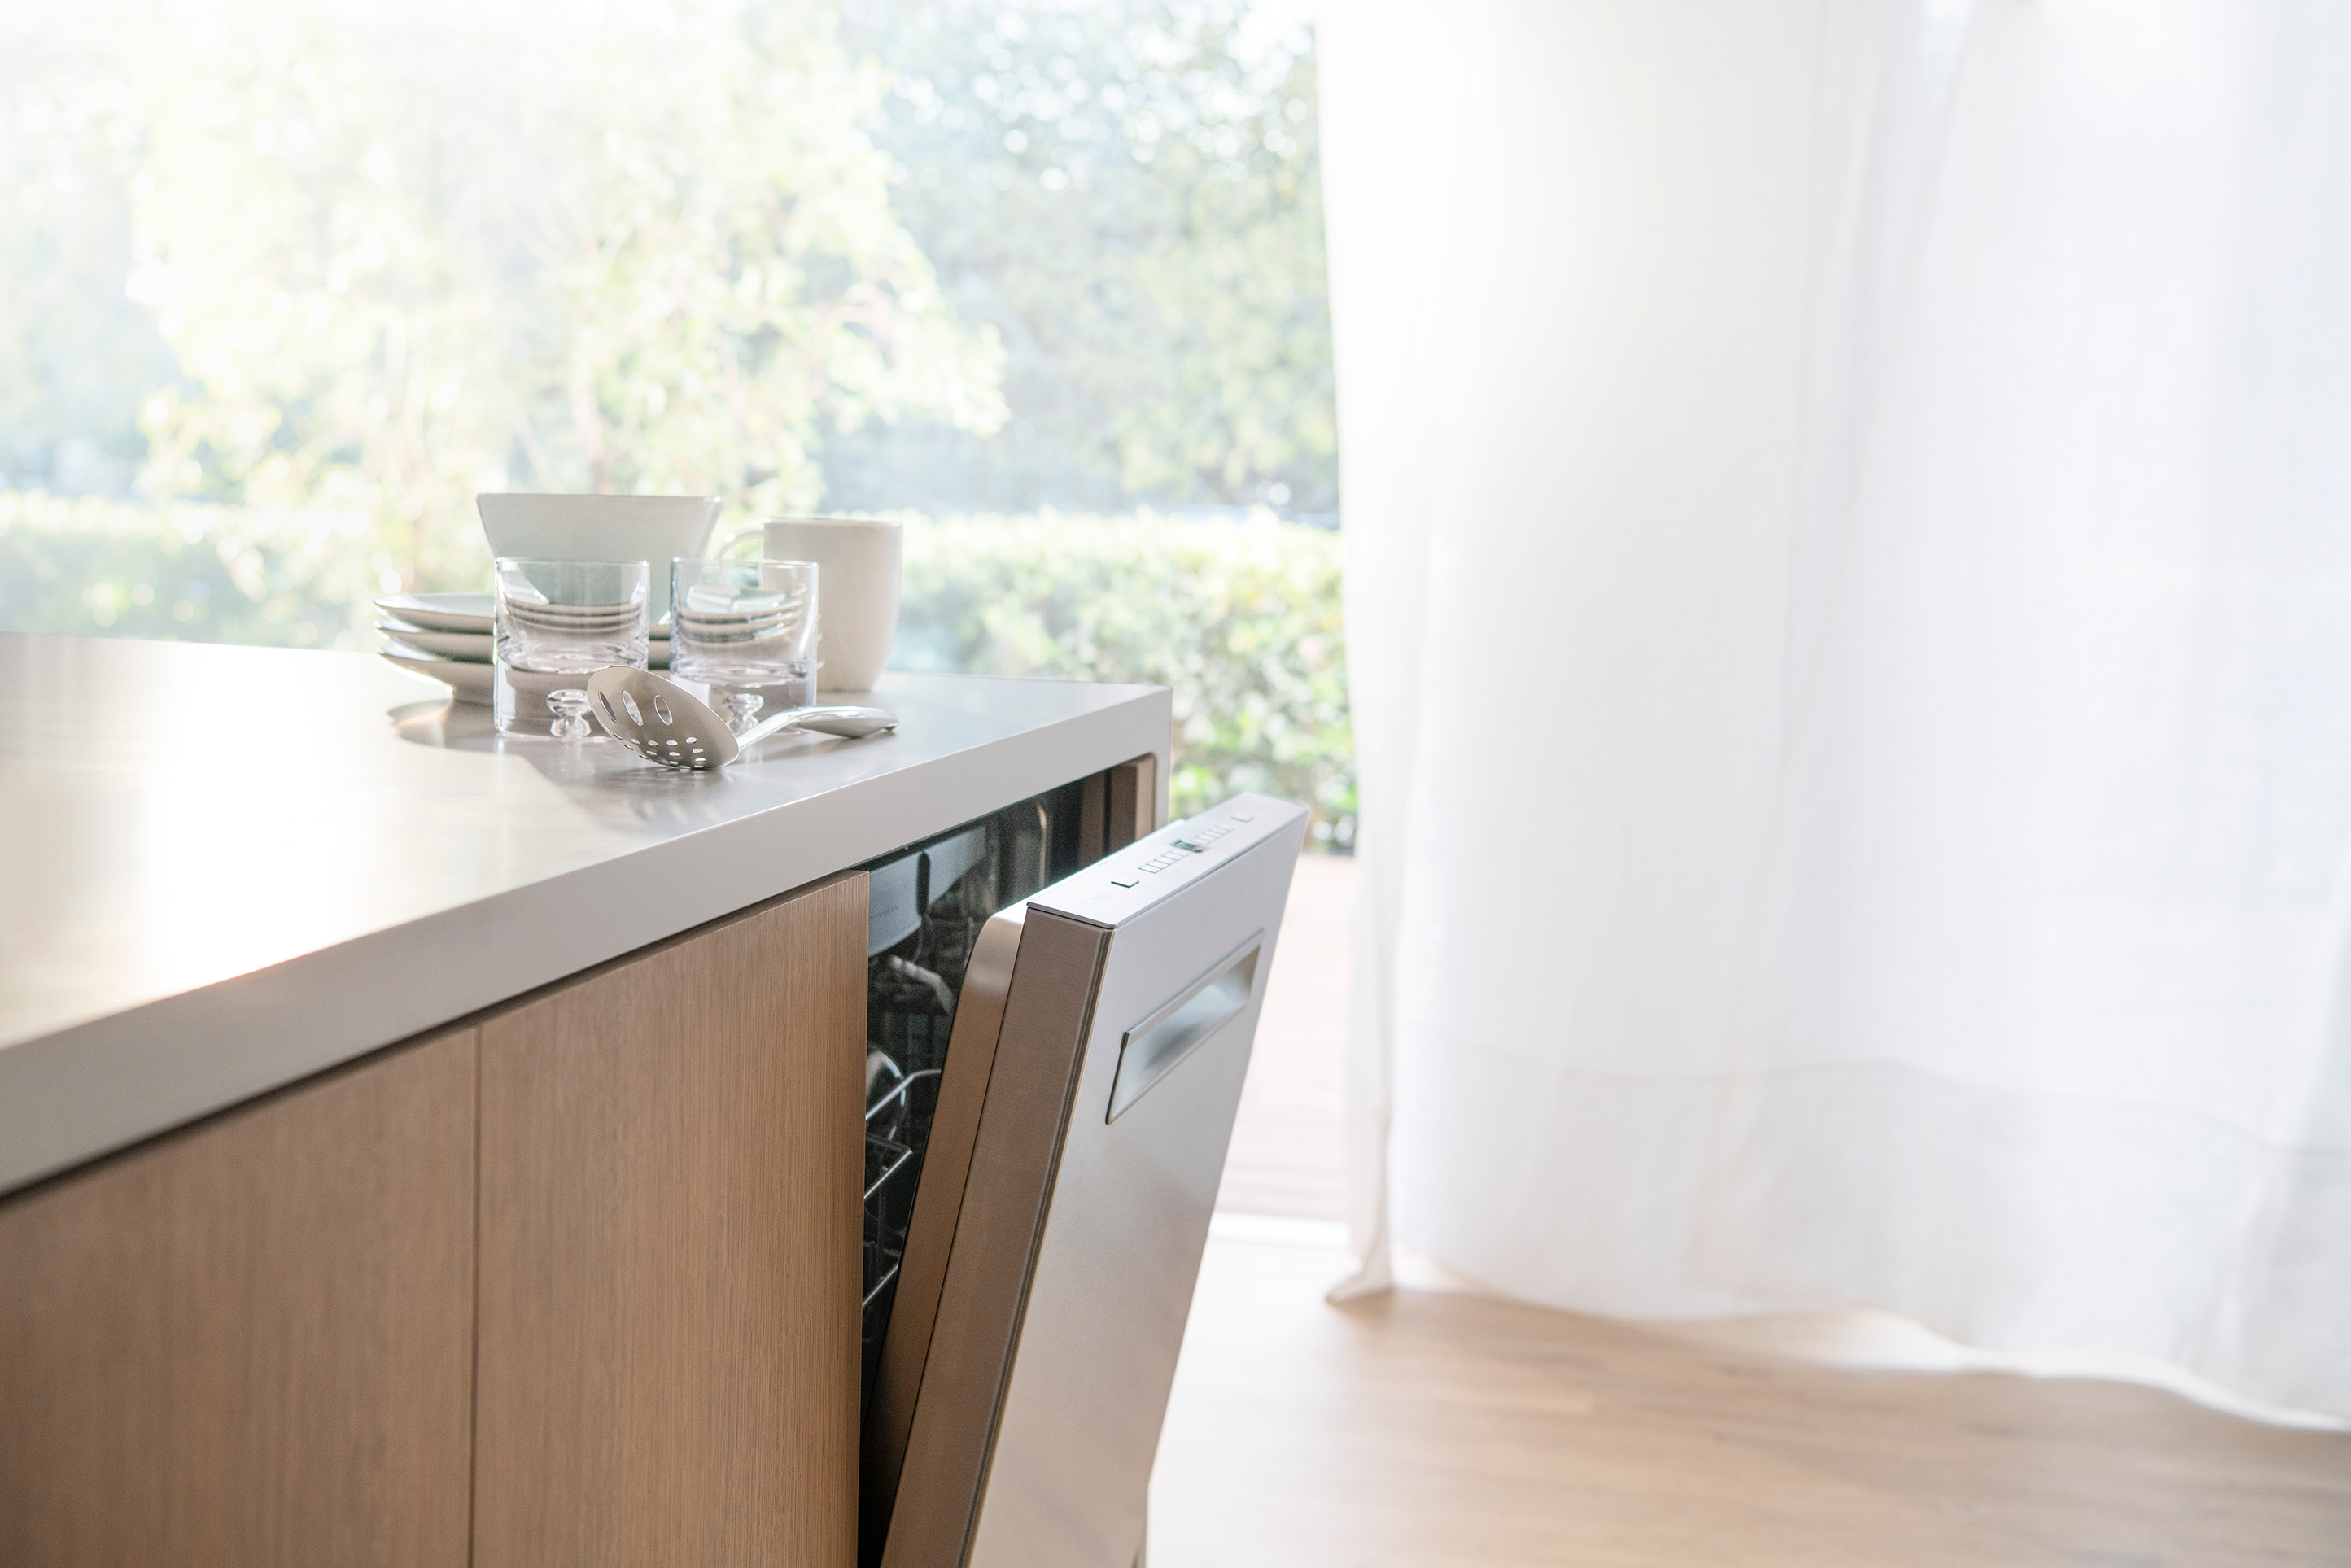 Choosing The Ideal Dishwasher For Your Family Kitchen